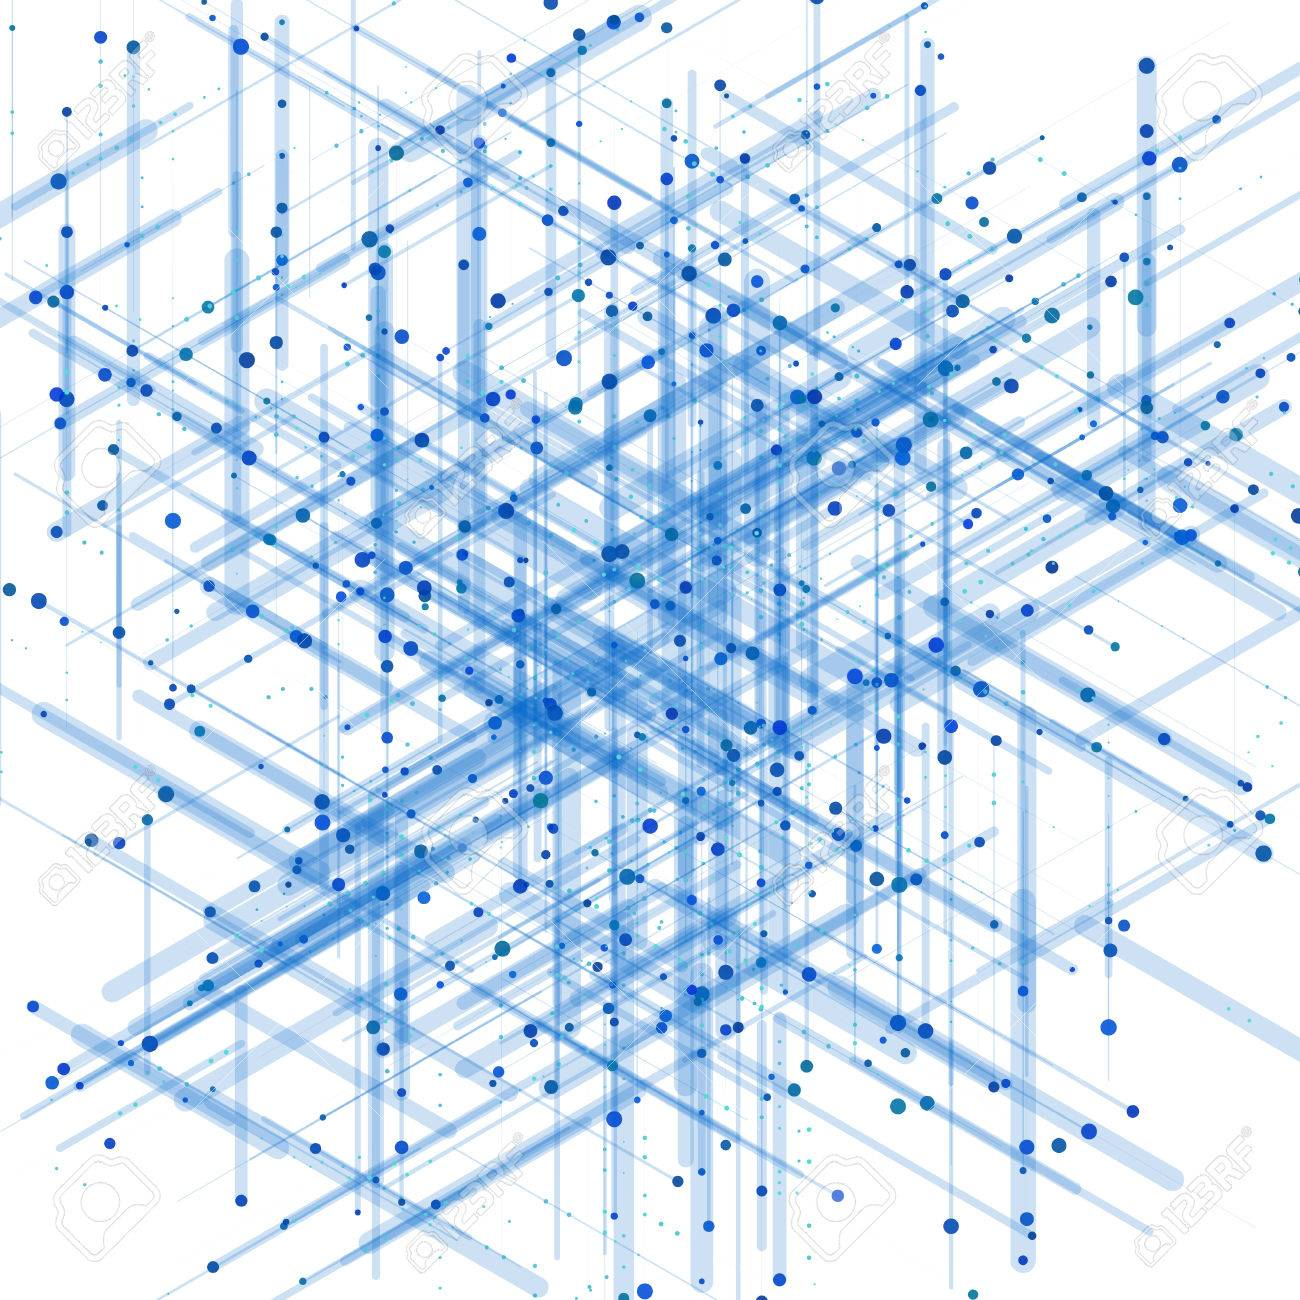 Abstract isometric computer generated 3d blueprint visualization abstract isometric computer generated 3d blueprint visualization lines background vector illustration for break through in malvernweather Gallery